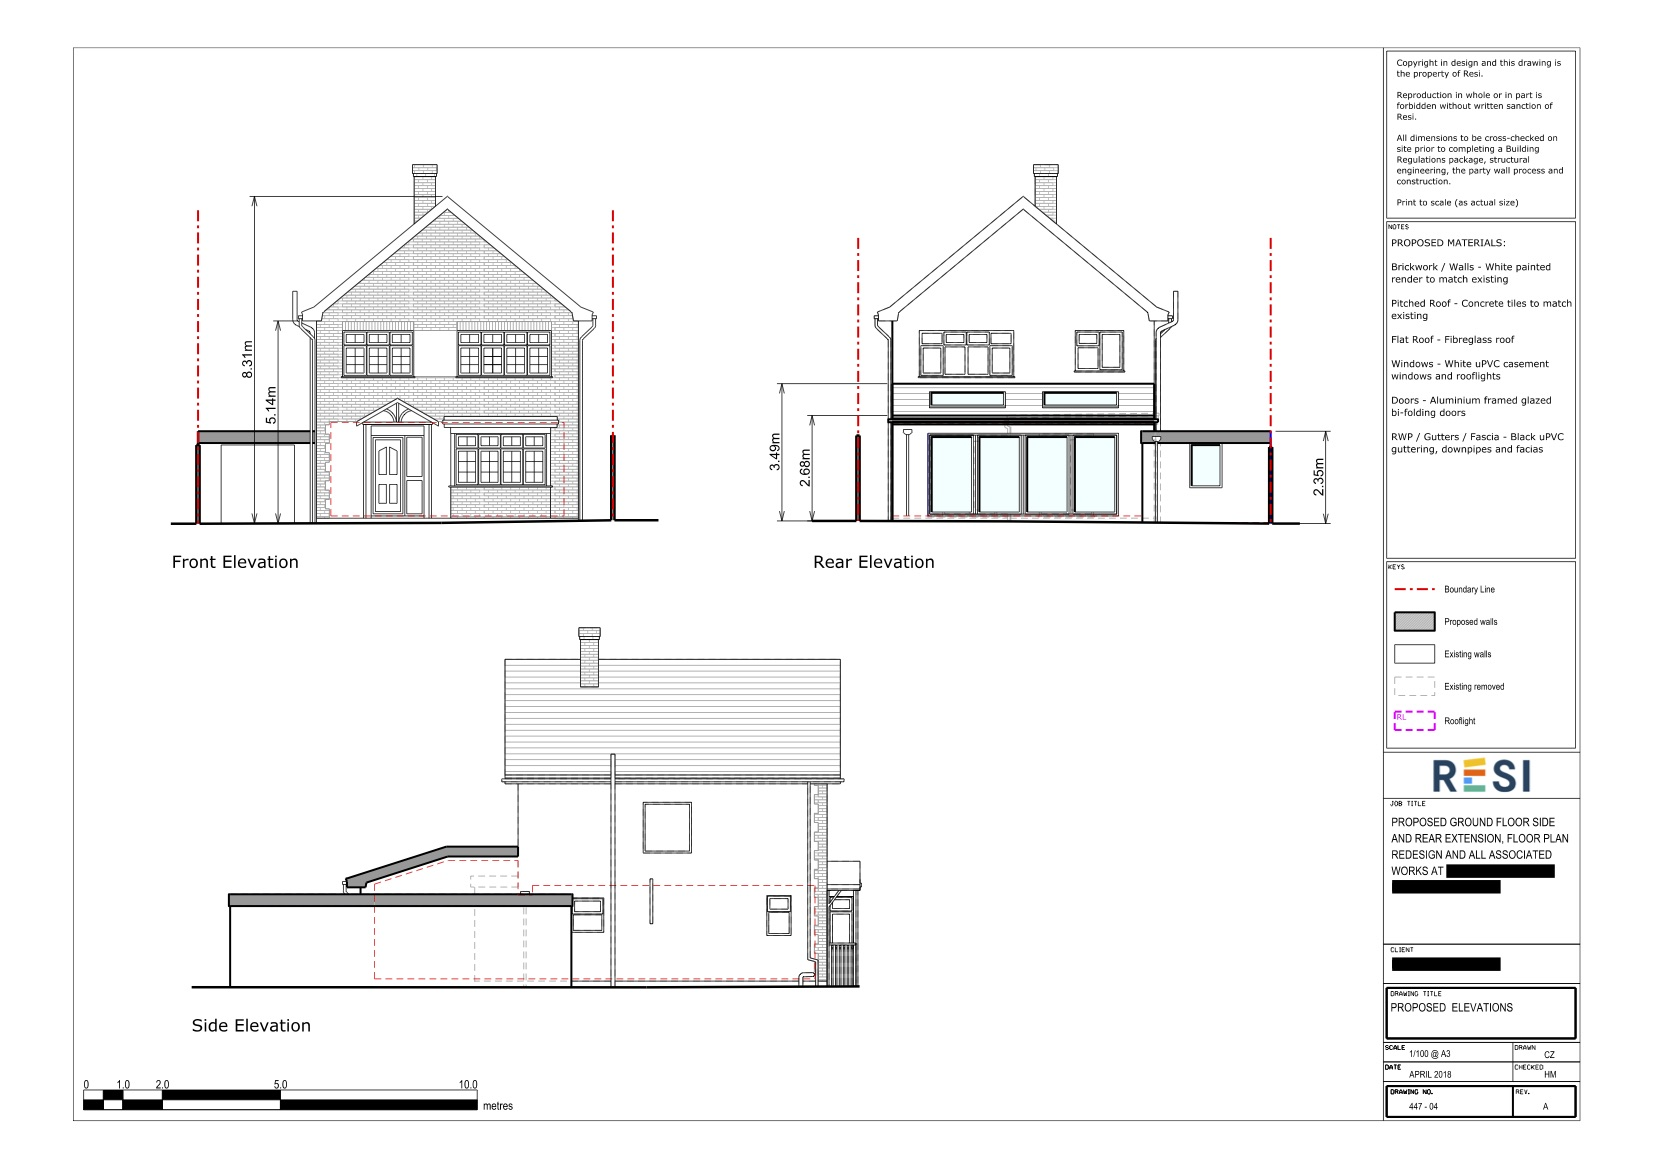 Architectural drawings rev a 4   elevations